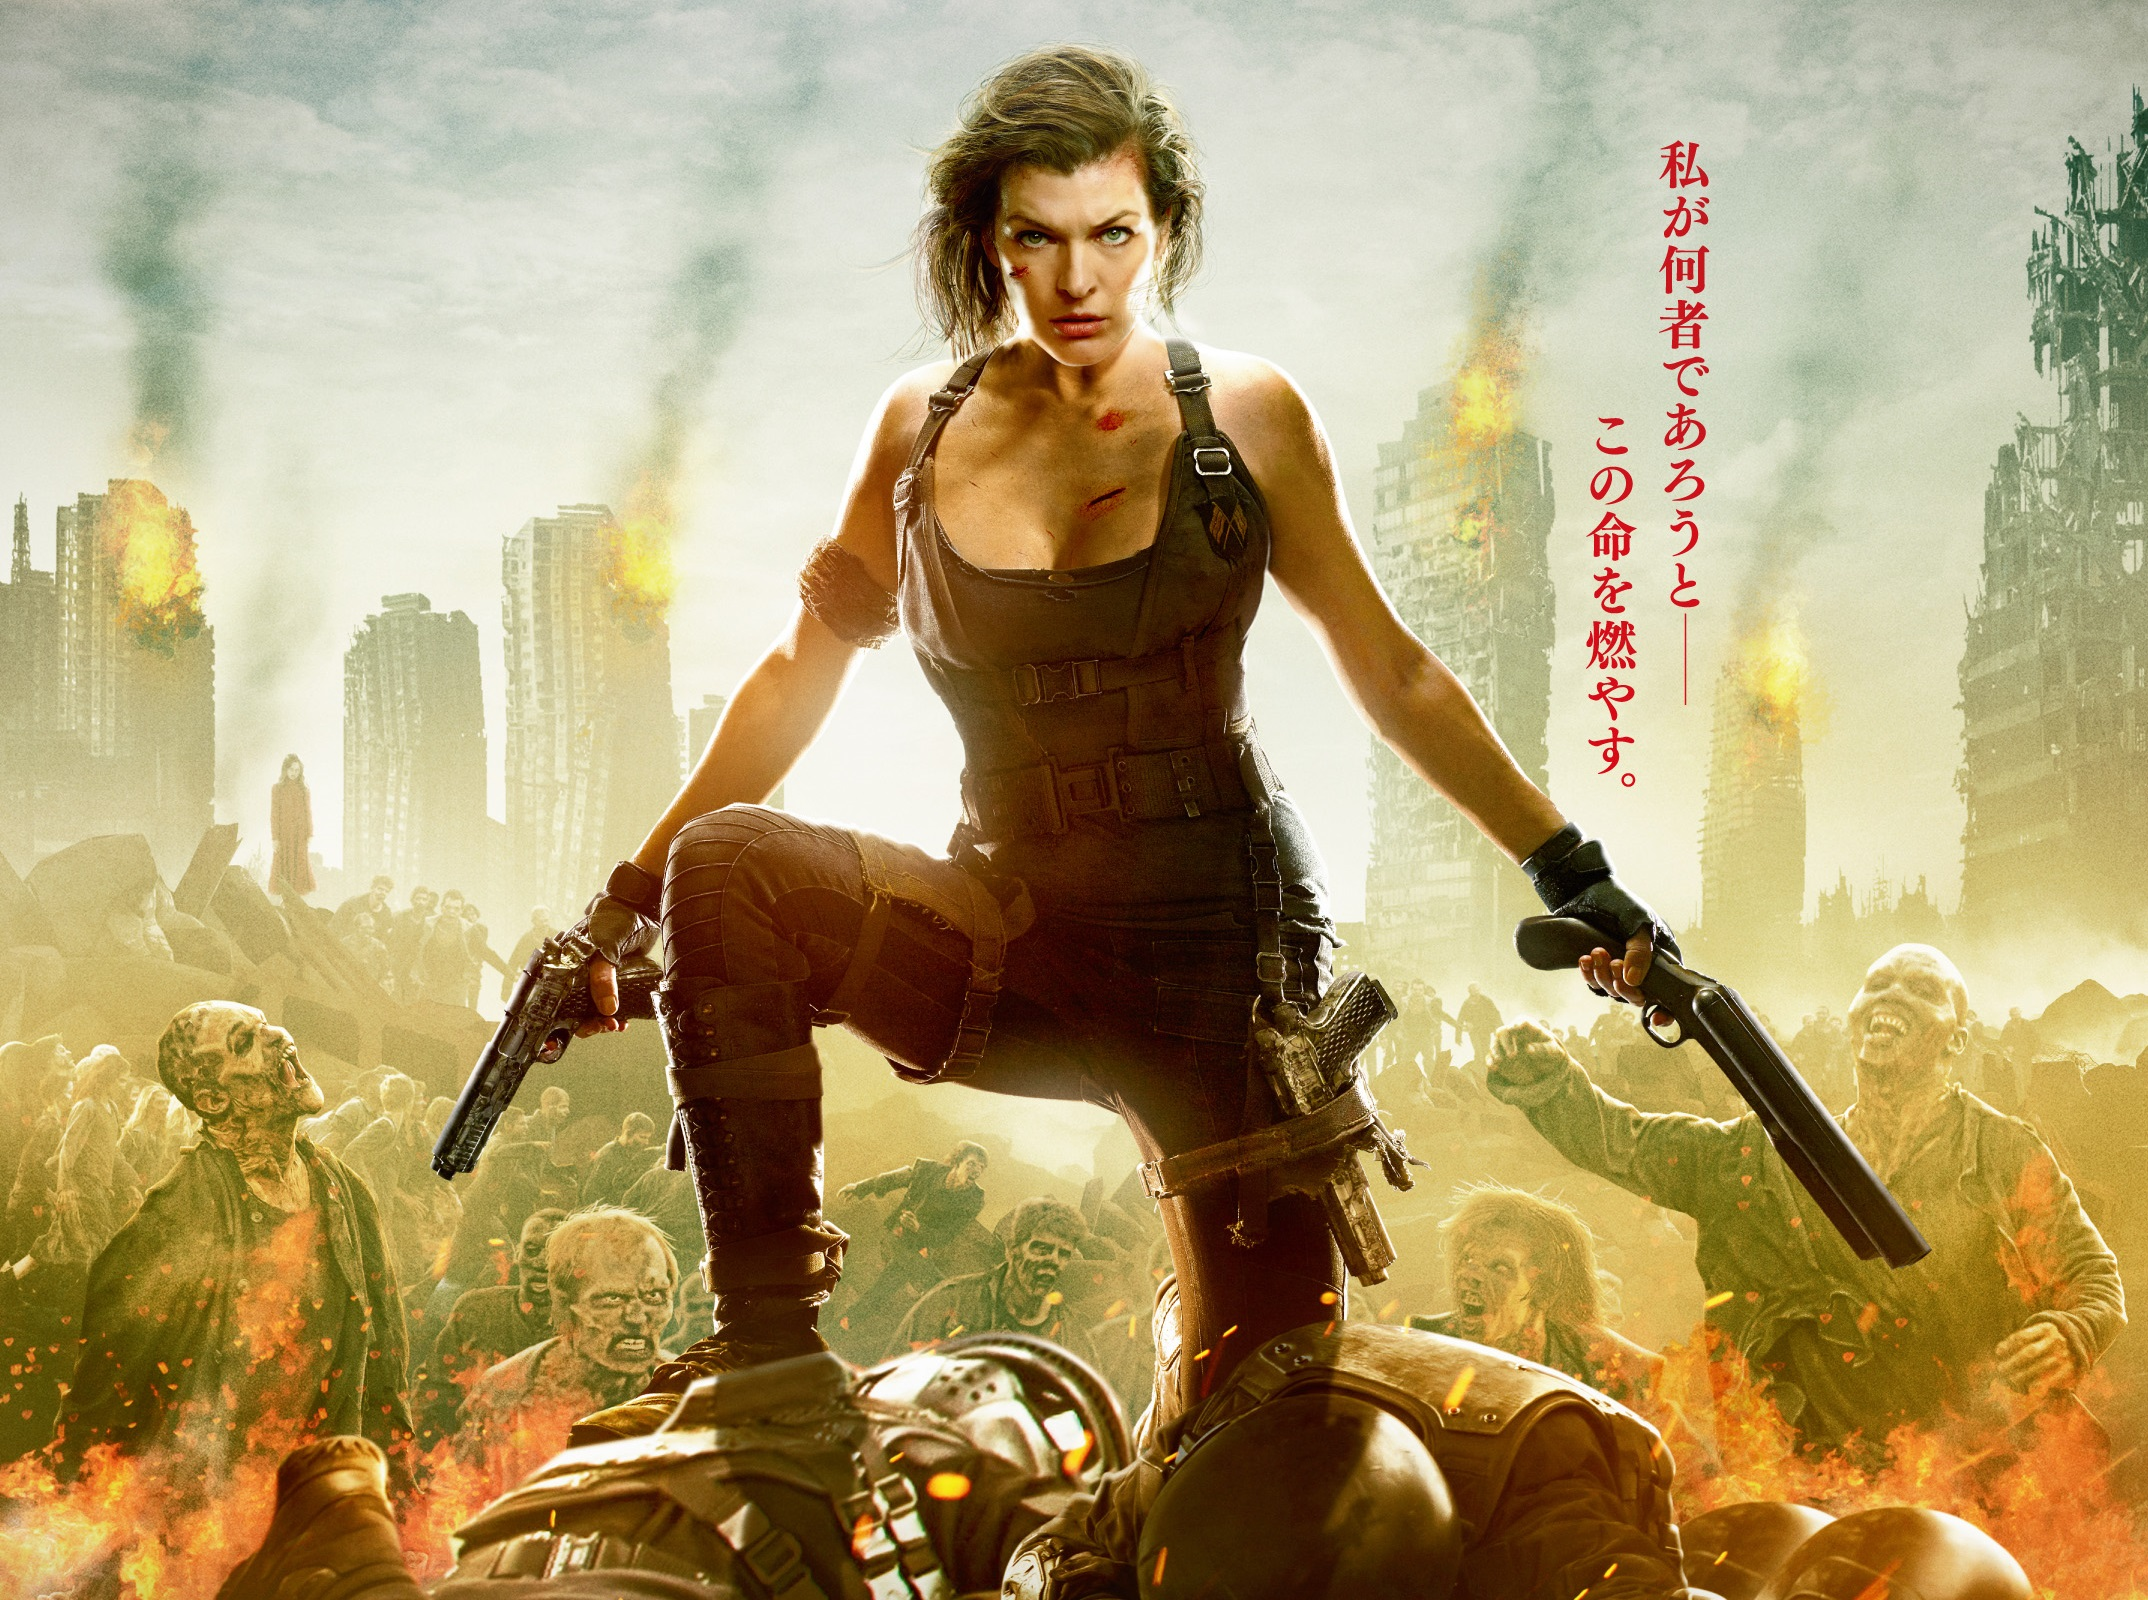 Resident Evil The Final Chapter 2016 Movie, HD Movies, 4k Wallpapers,  Images, Backgrounds, Photos and Pictures